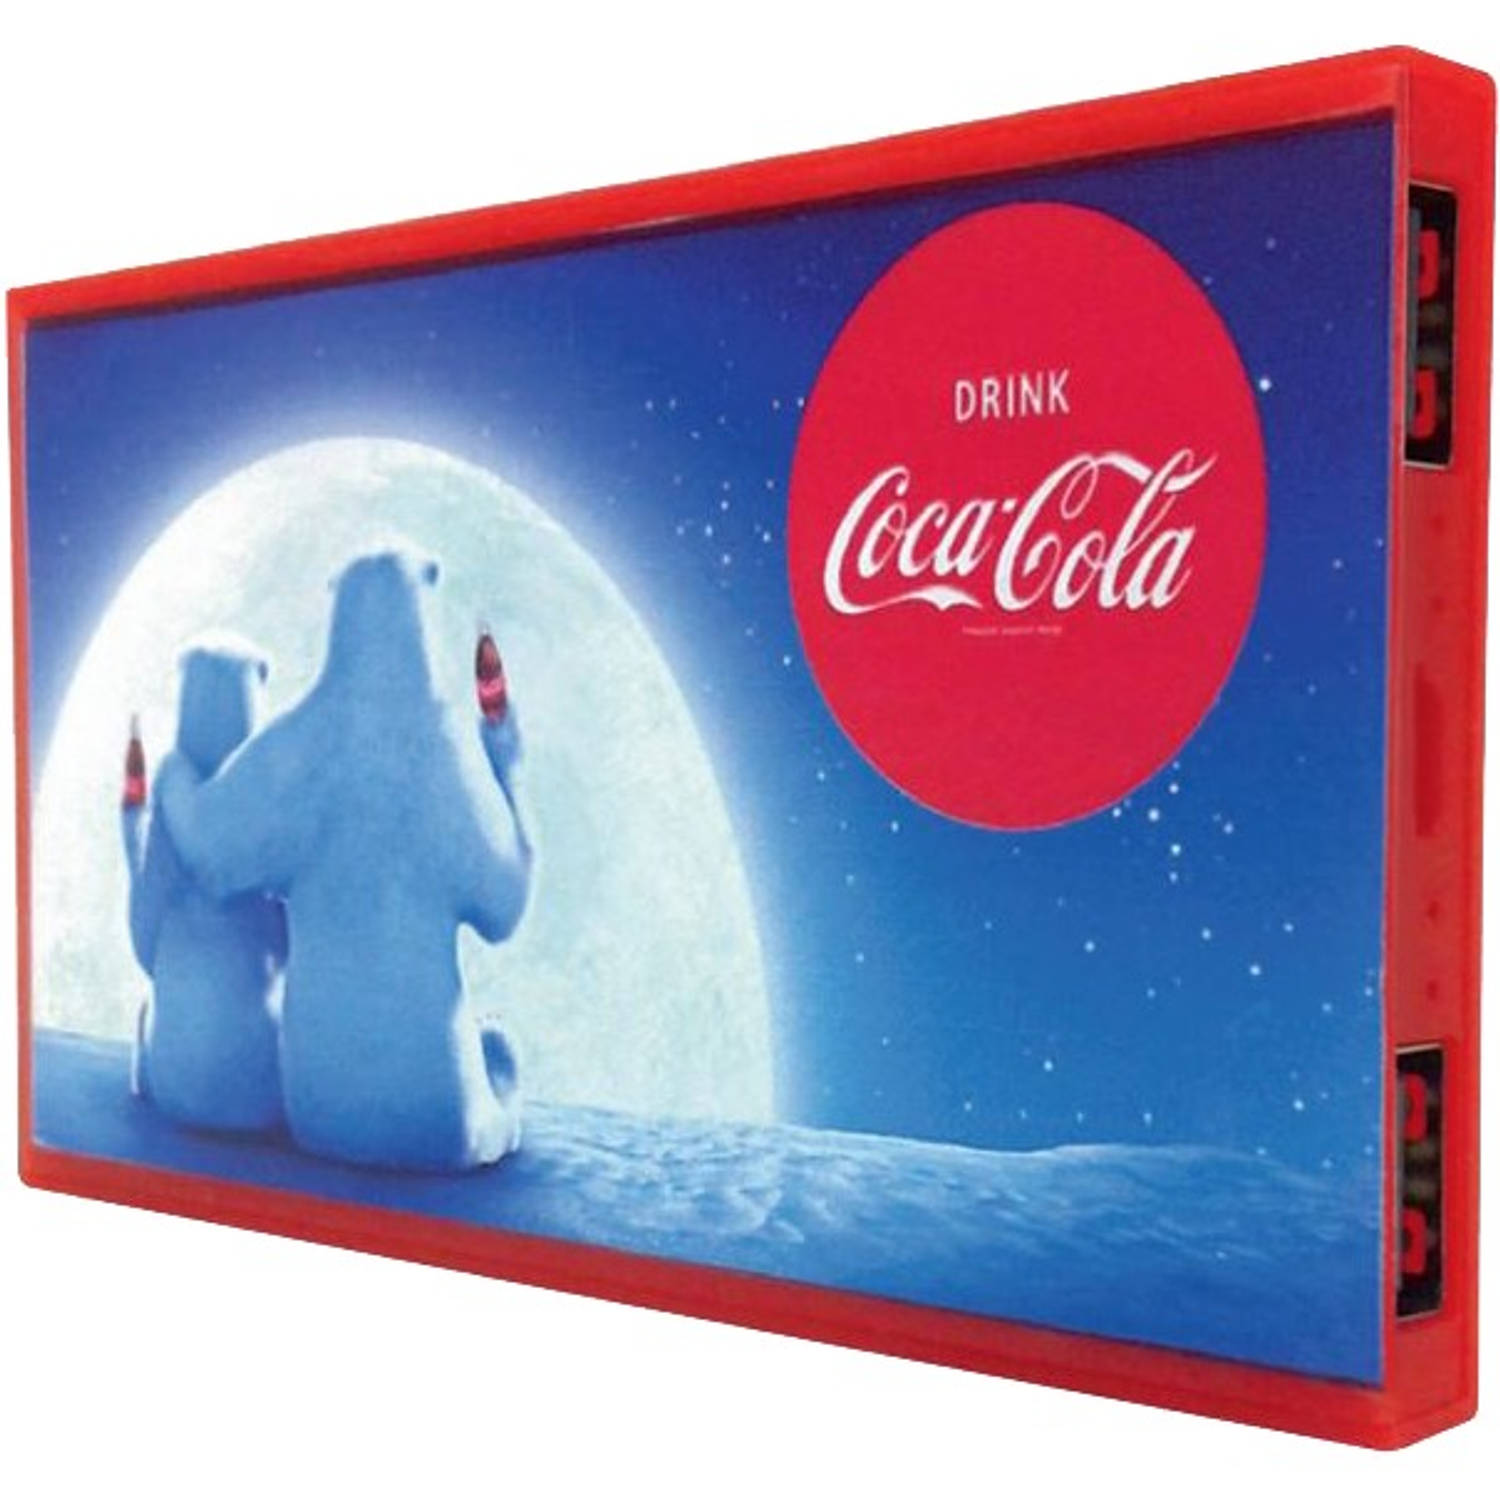 Coca - Cola powerbank PW2USBFLAT-40-W2